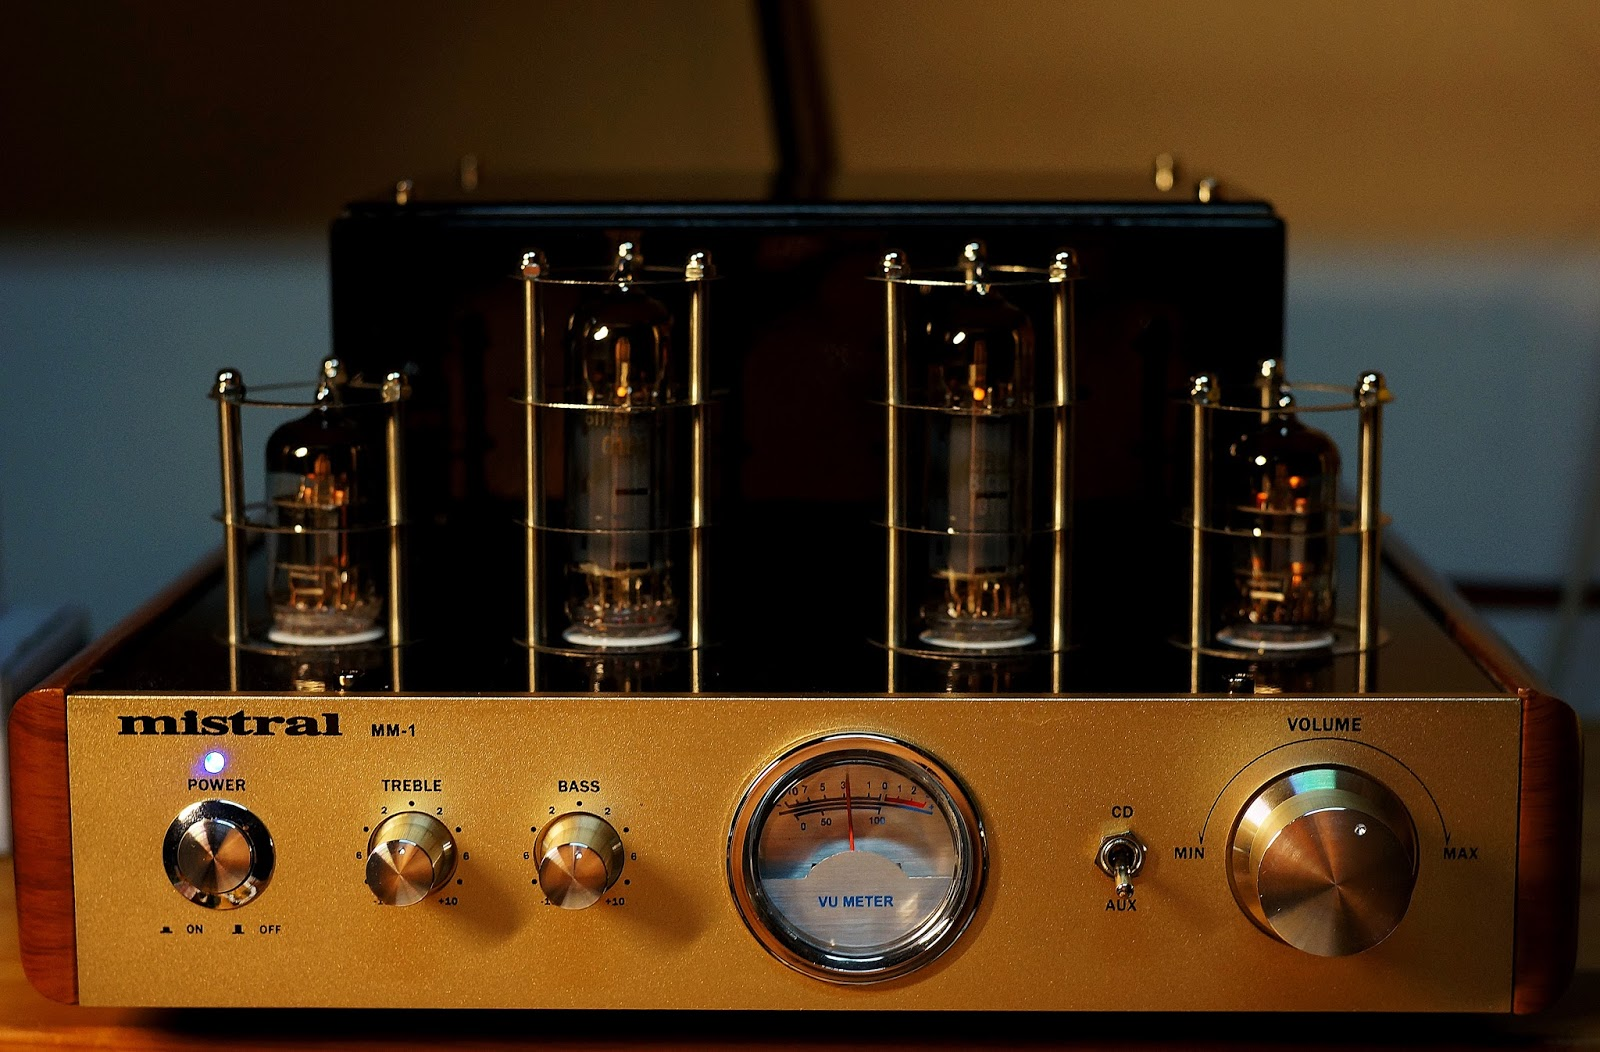 Project Repair Mistral Mm 1 Hybrid Tube Amplifier 6n2p Pretone Low Volt Cost Circuit Diagram Super I Did Not Connect The Led Lighting For Vu Meter Because Felt It Was Far Too Glaring And Spoiled Look Of This Otherwise Good Looking Amp Tubes